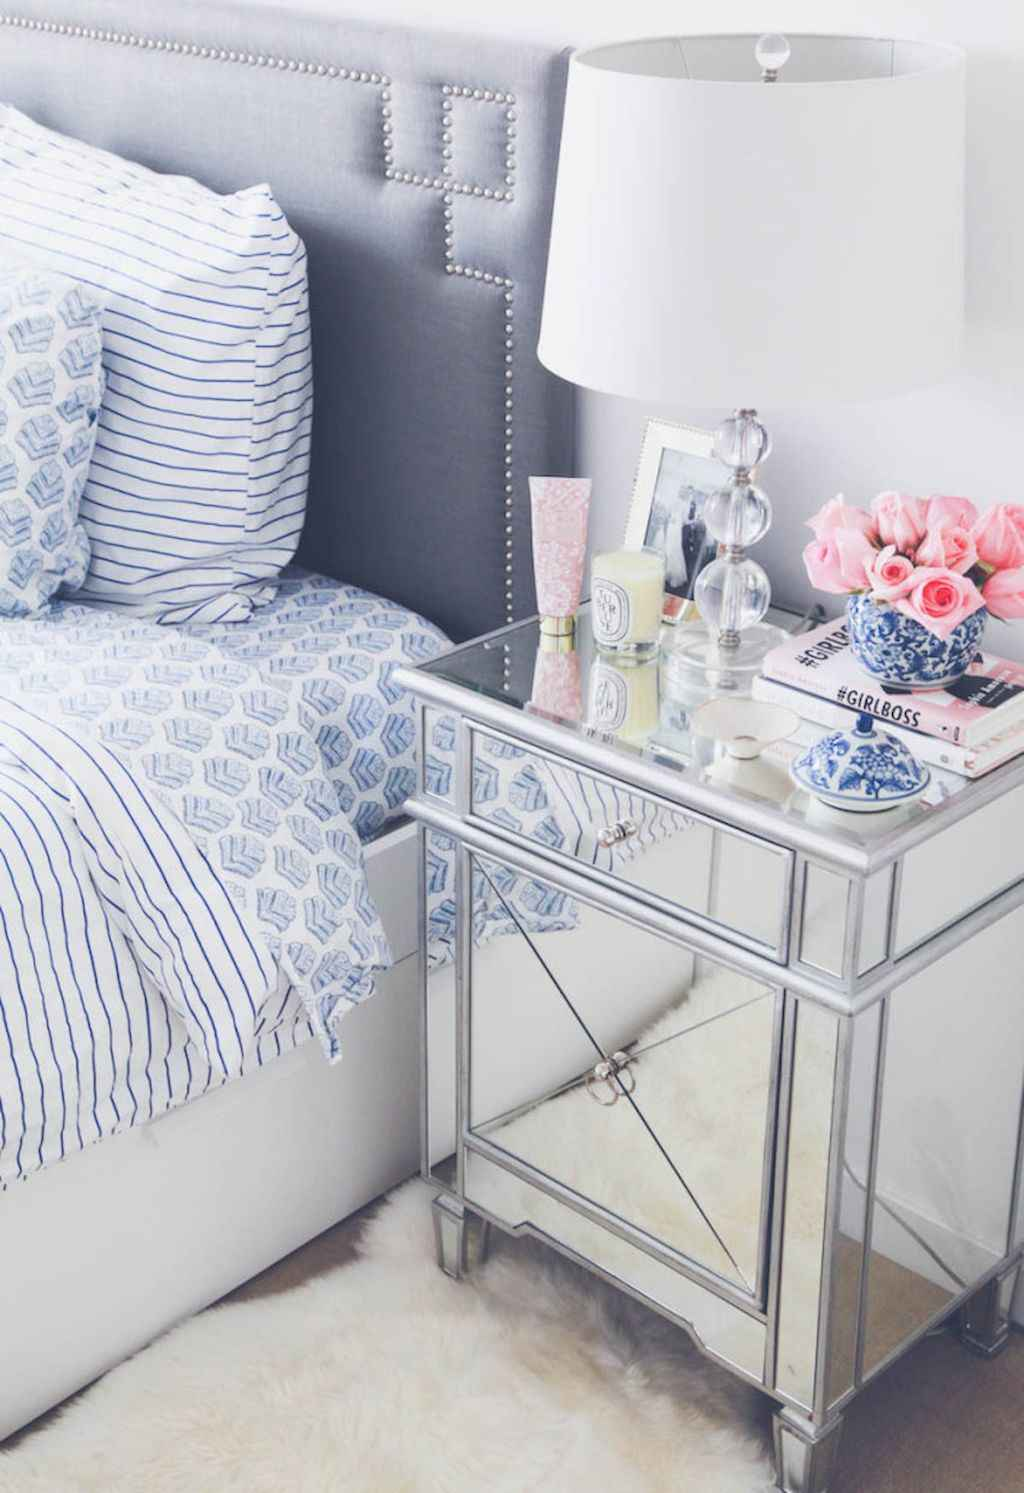 Couples first apartment decorating ideas (31)